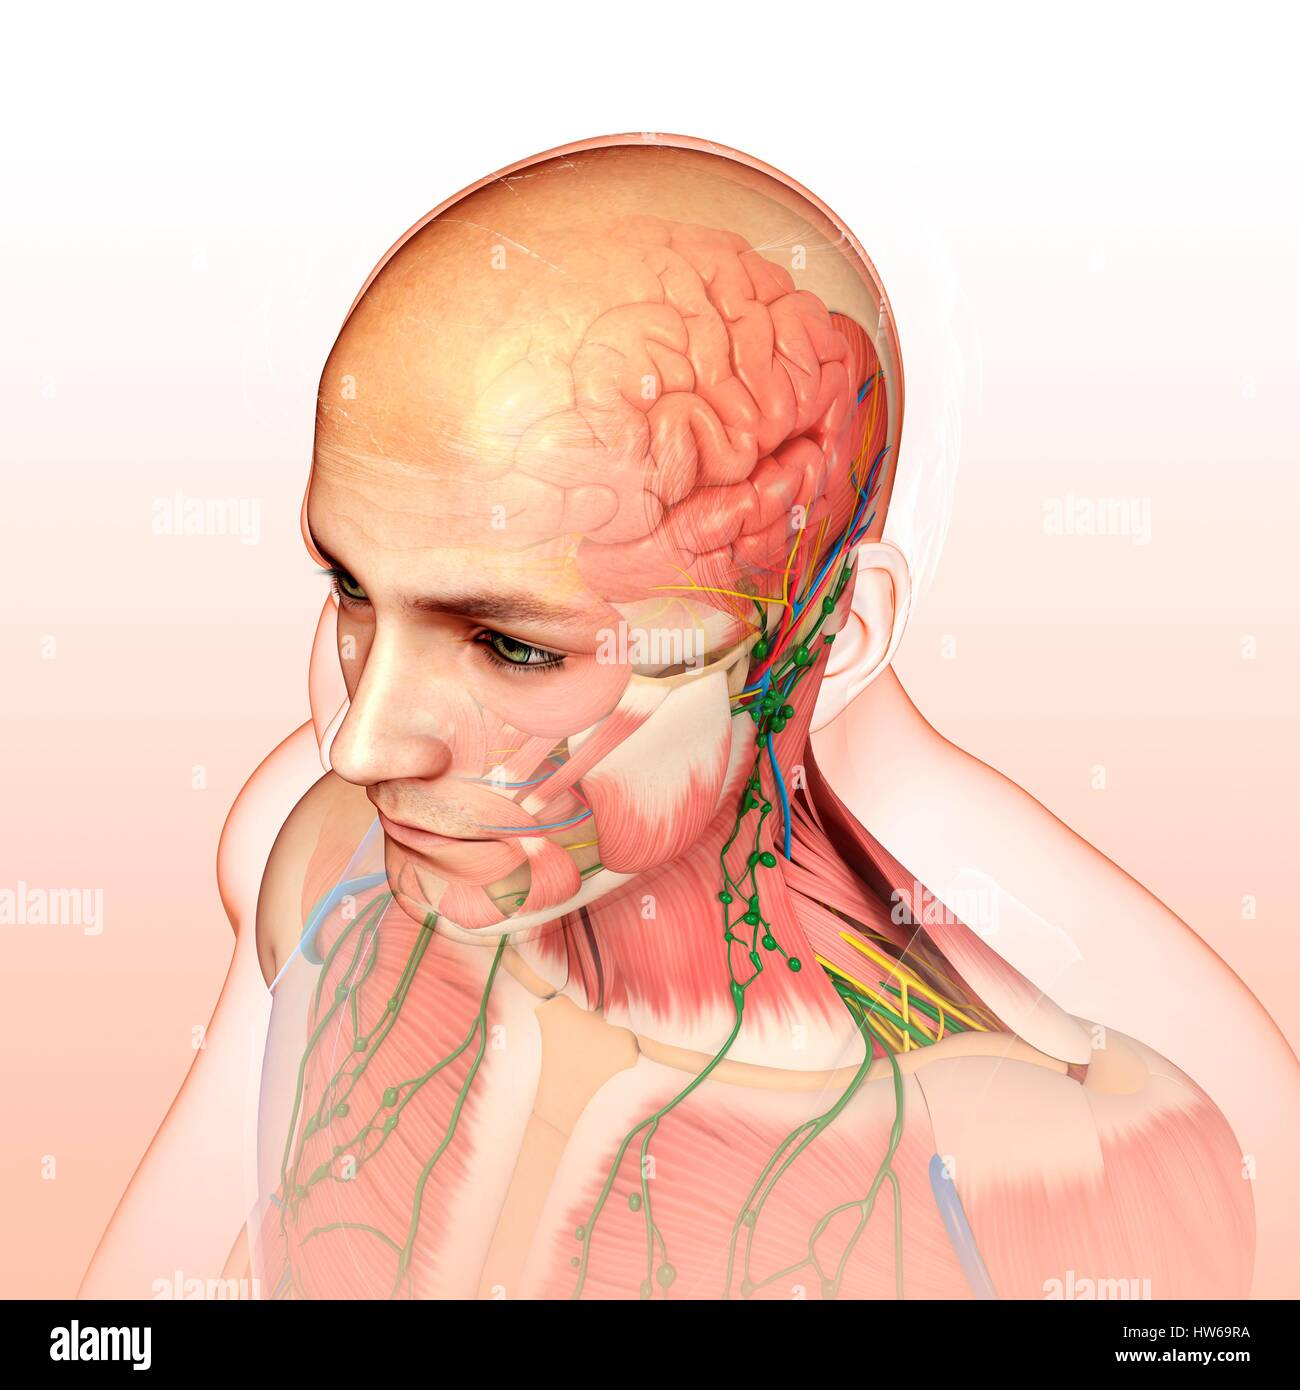 hight resolution of illustration of male head and chest anatomy stock image